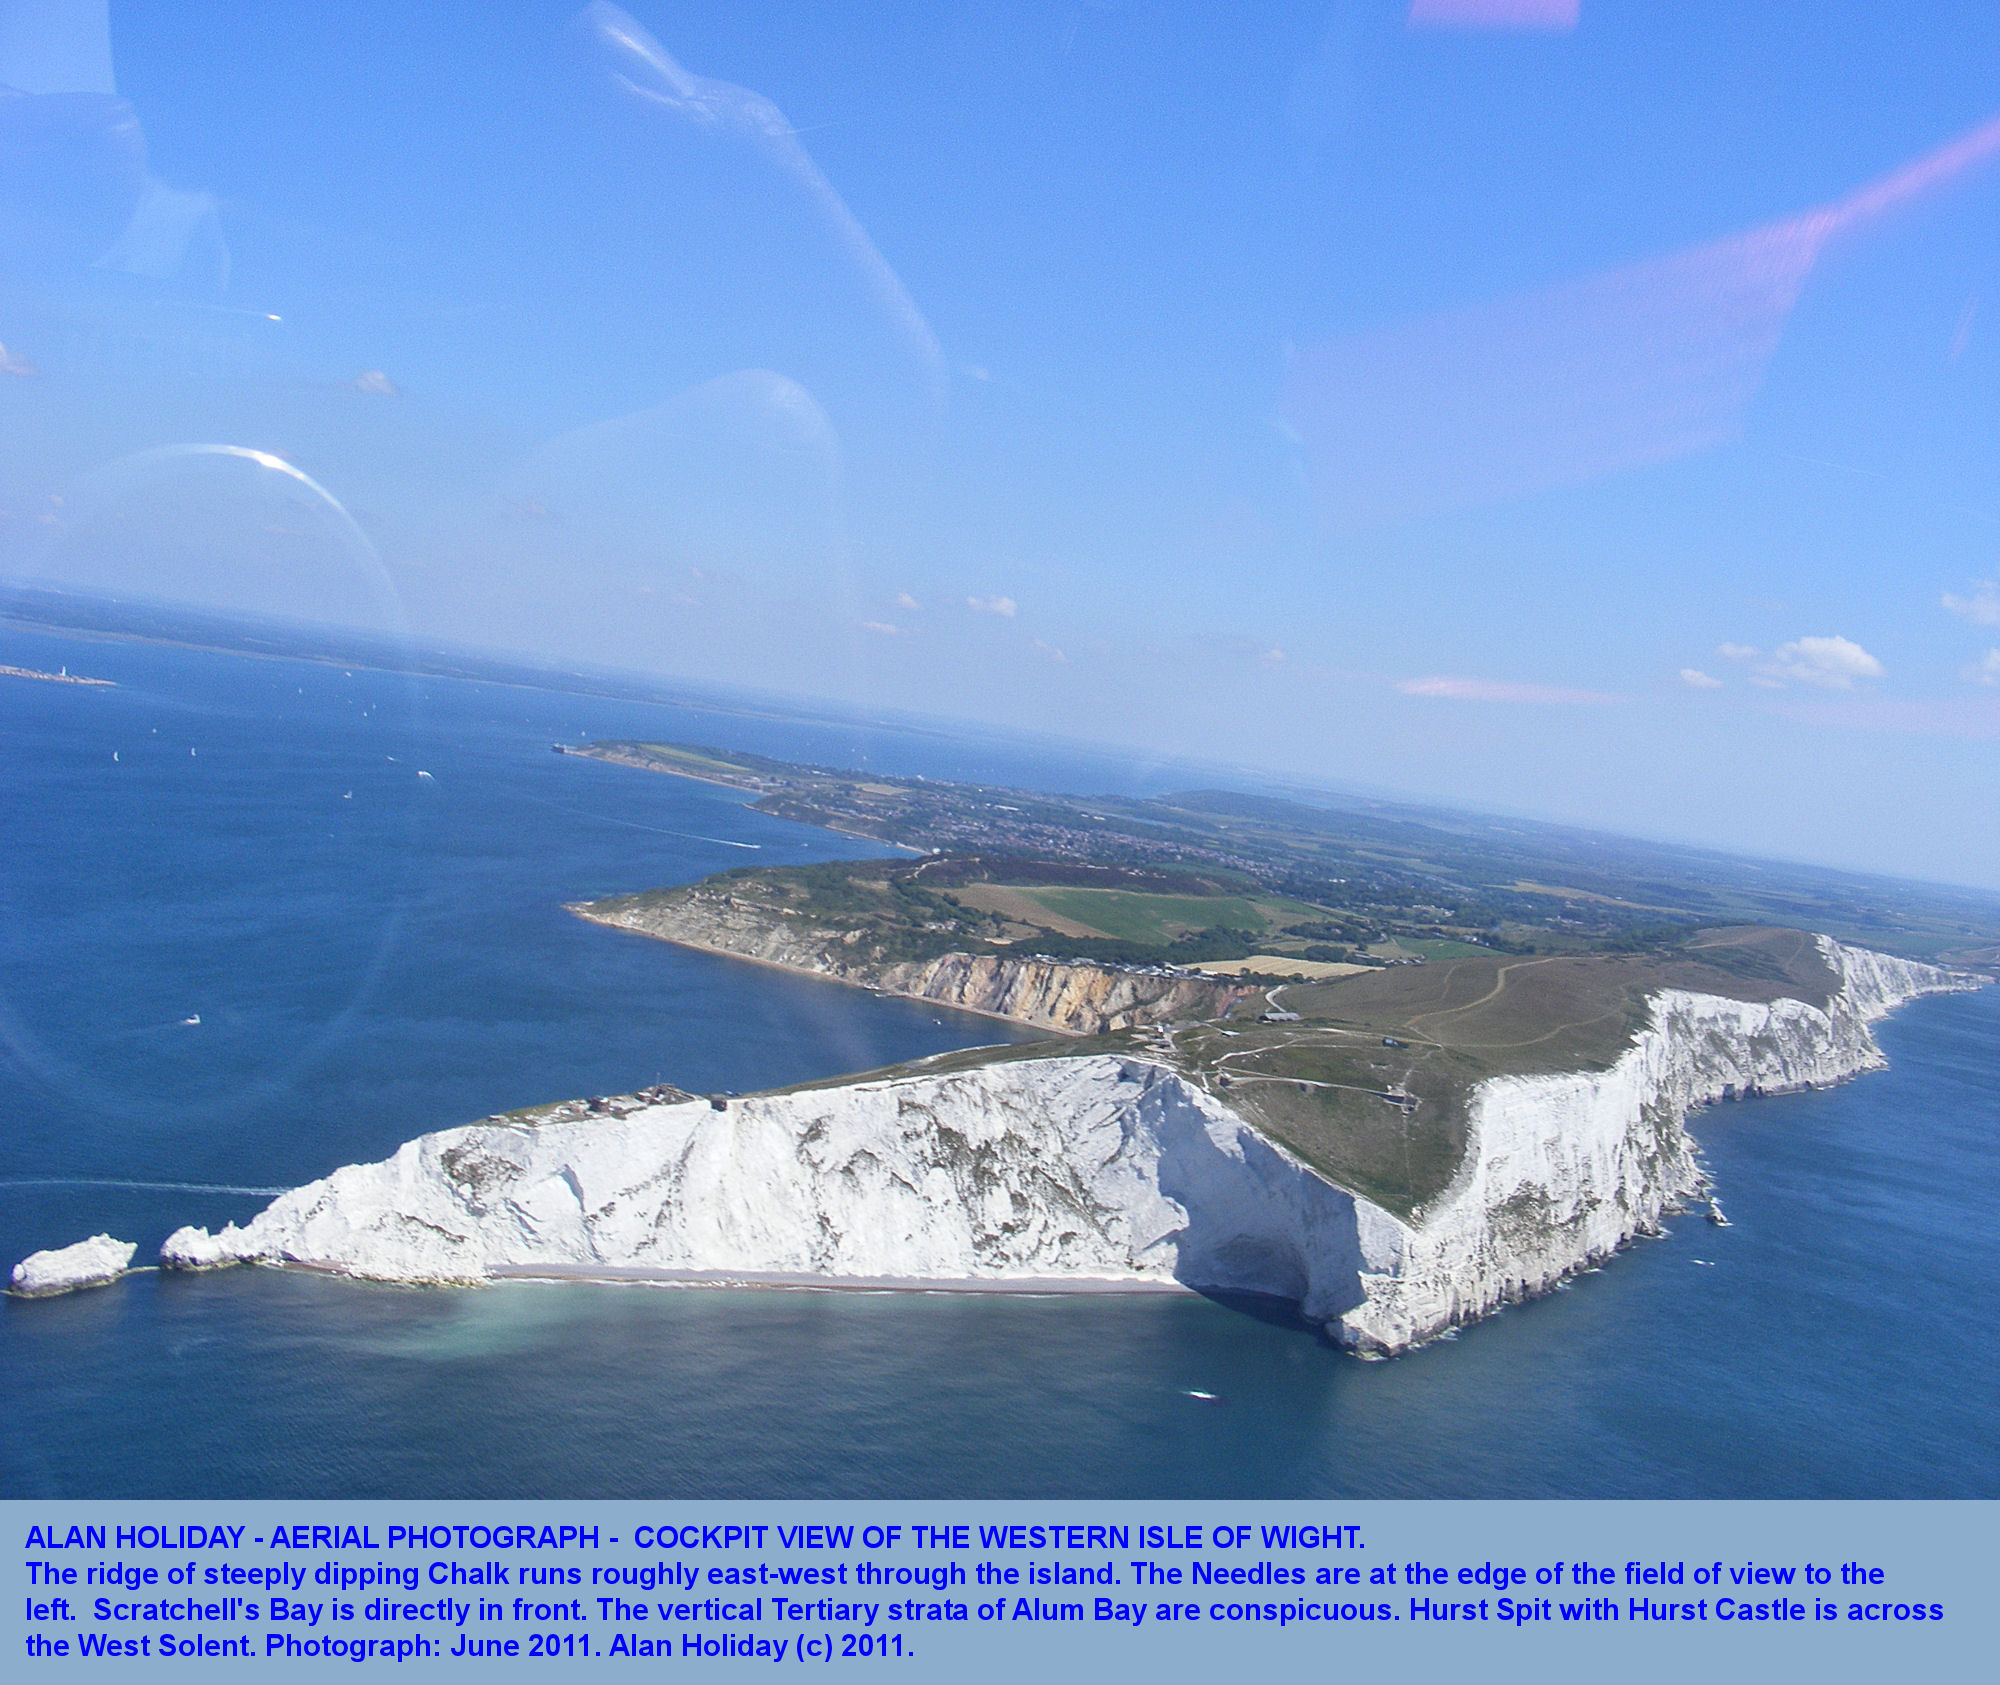 isle of wight latin dating site Buy & sell your second hand & new items on wightbay for free sell your items, cars, property to others in isle of wight.